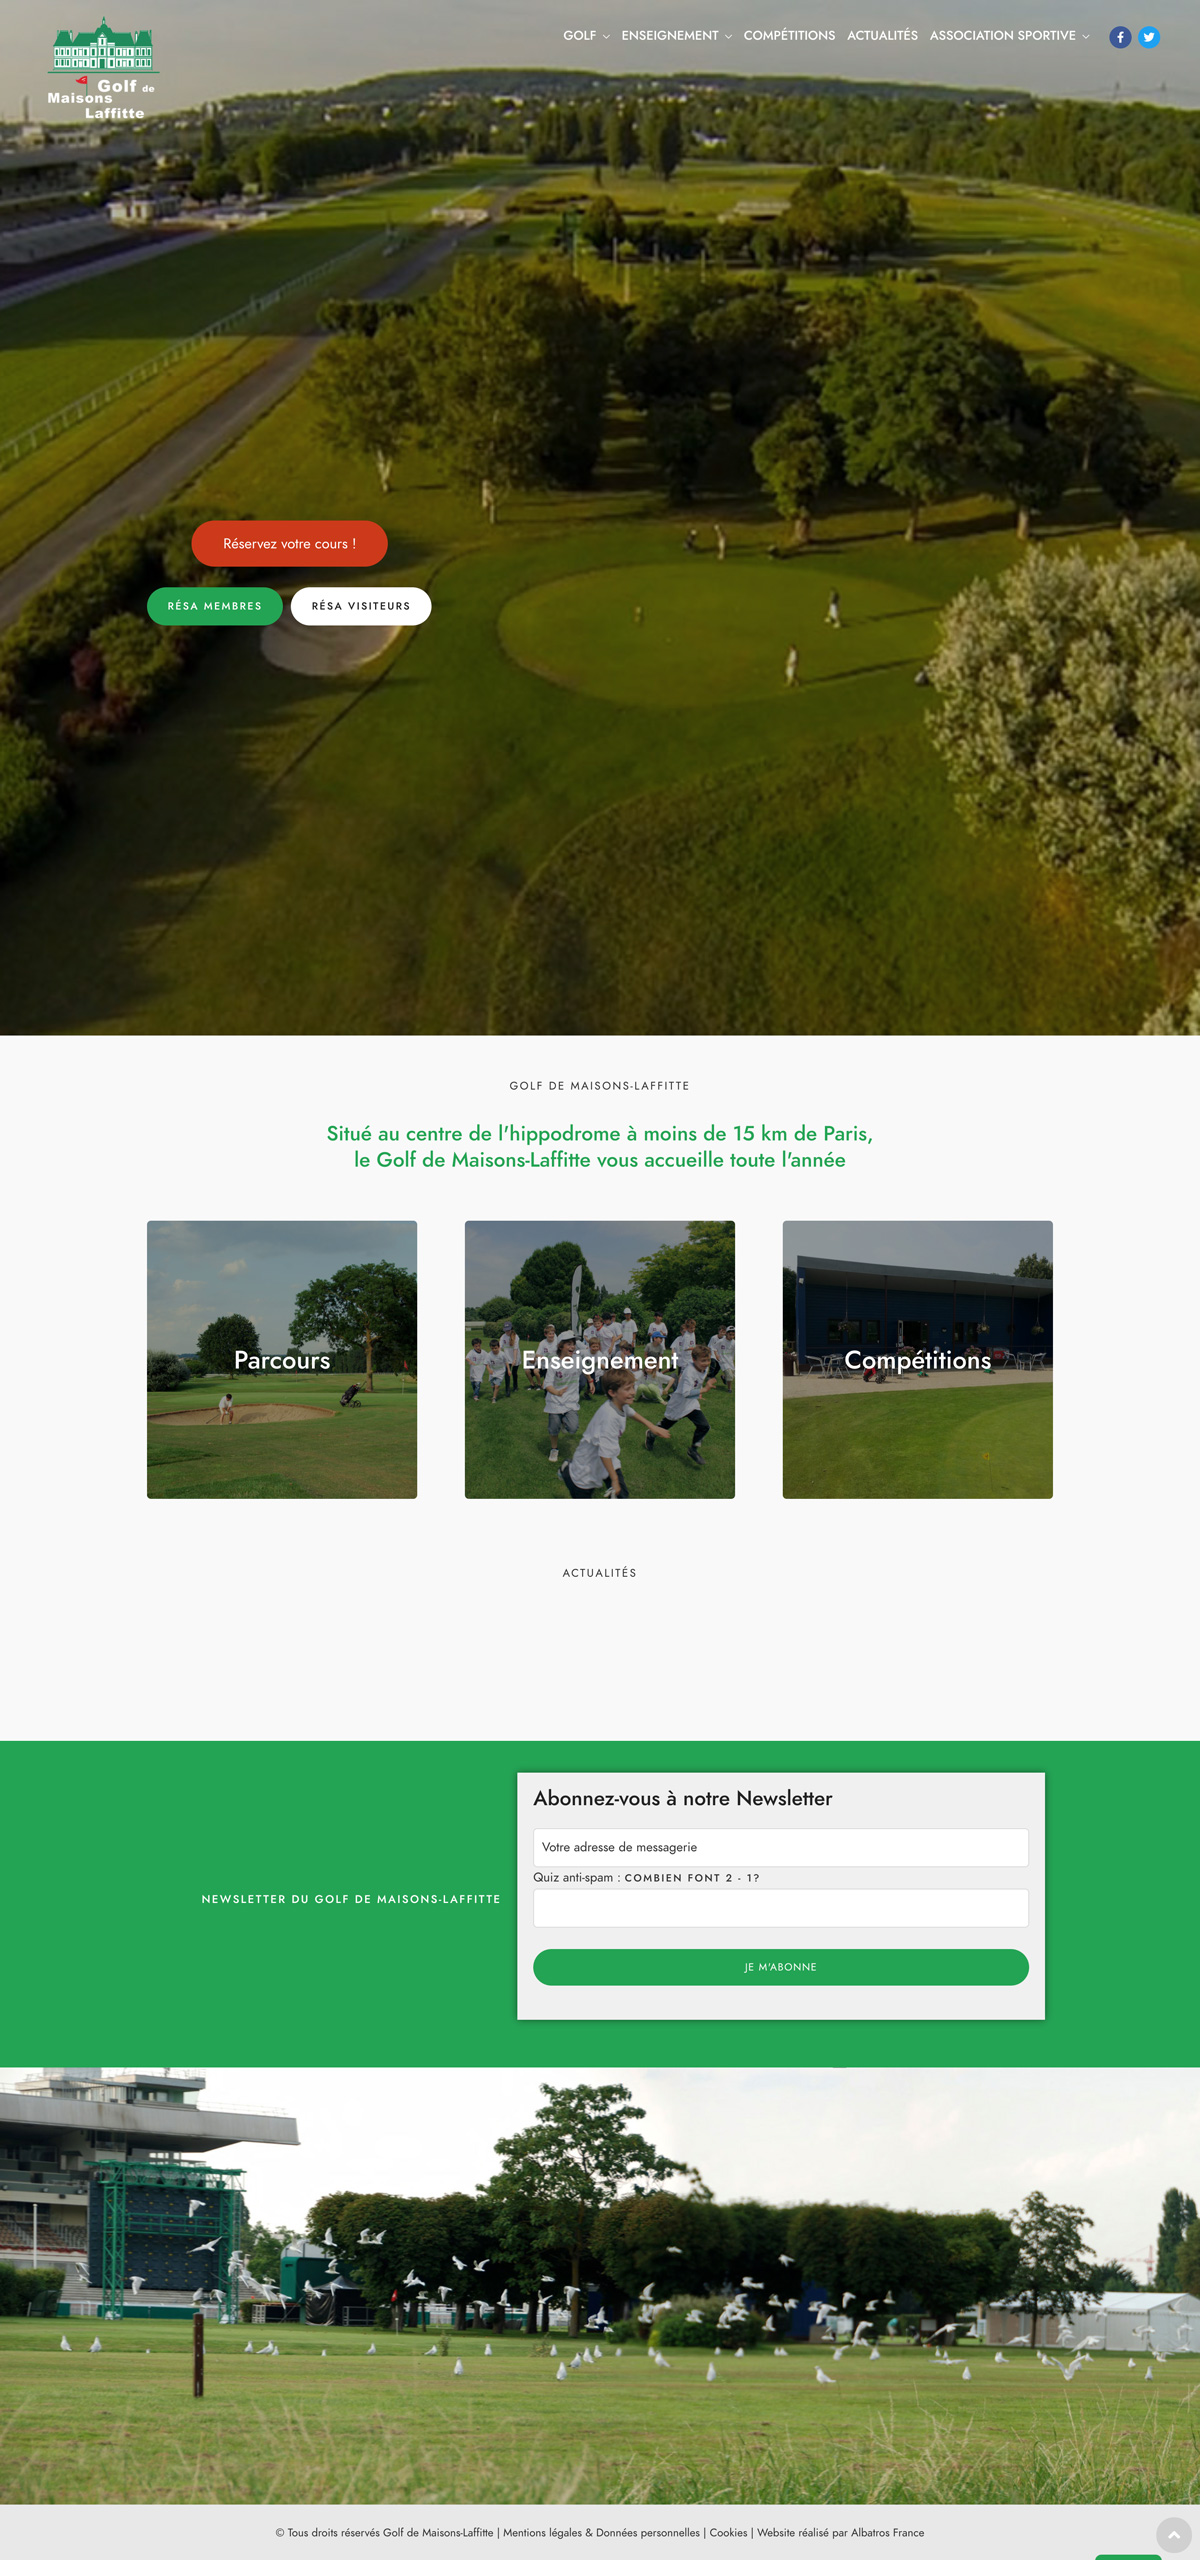 rdsc mistral golf maisons laffitte website screenshot